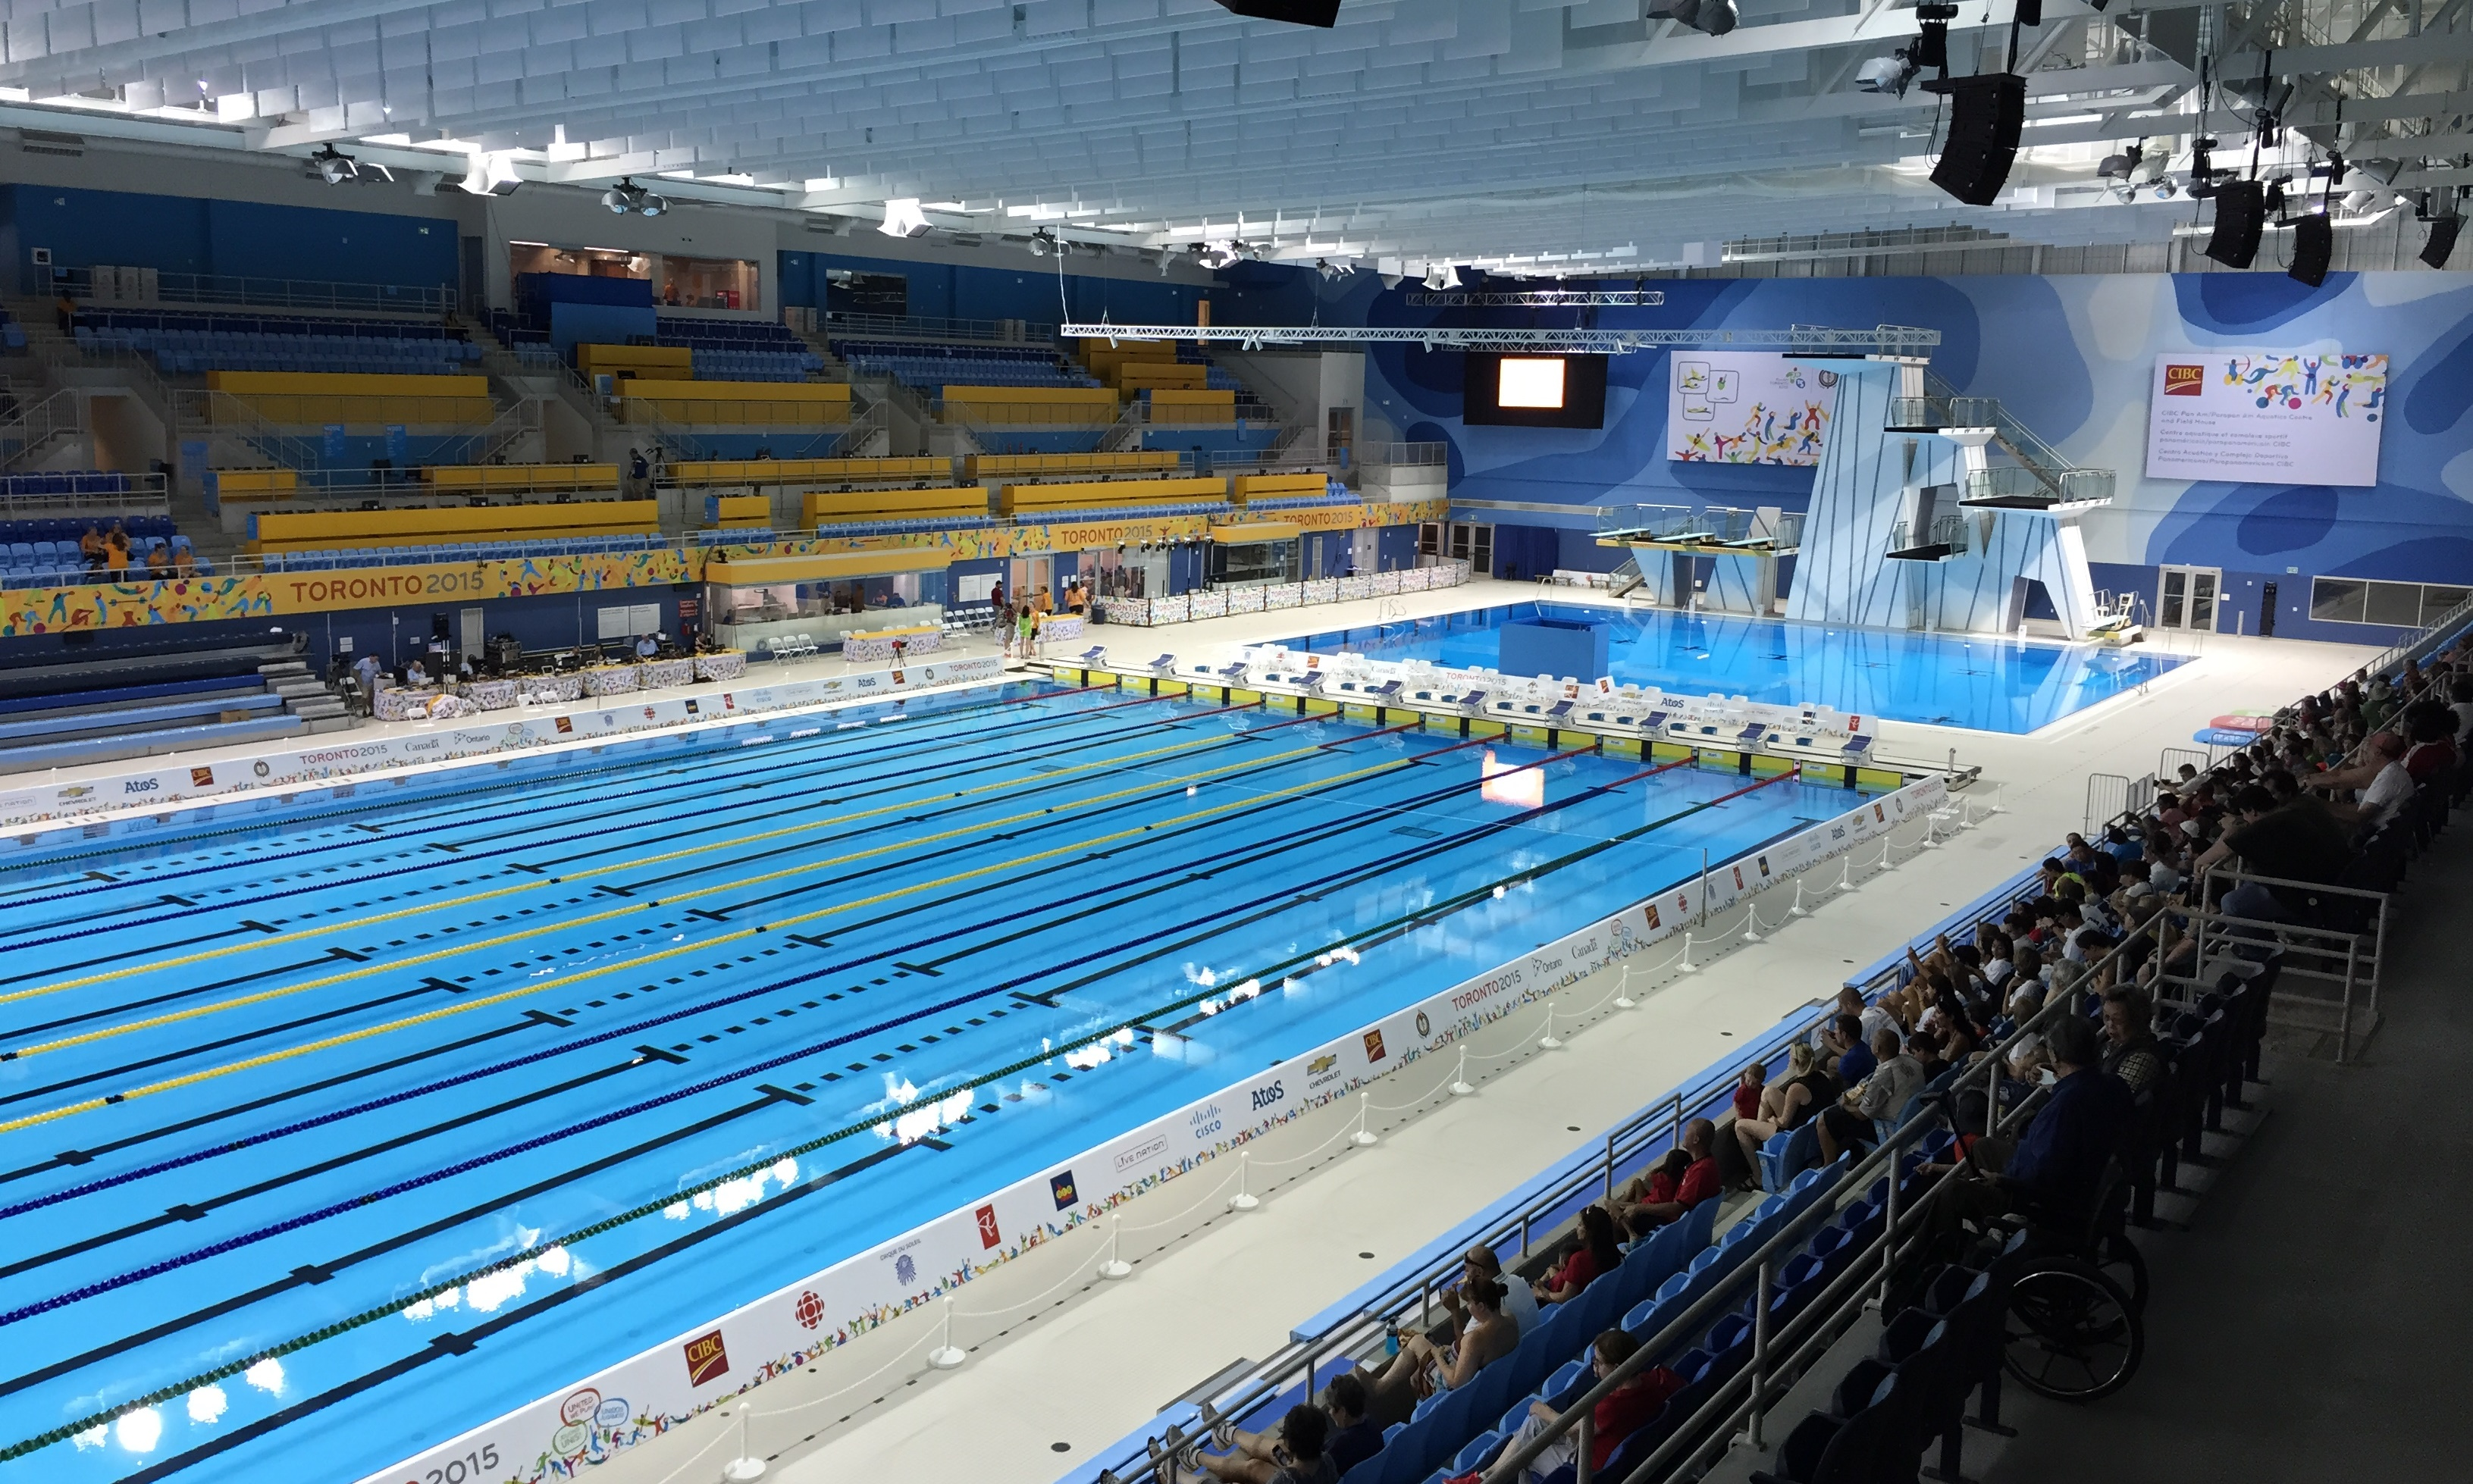 toronto pan am sports centre wikiwand beijing china 14 september 2015 people visit the olympic - Olympic Swimming Pool 2015